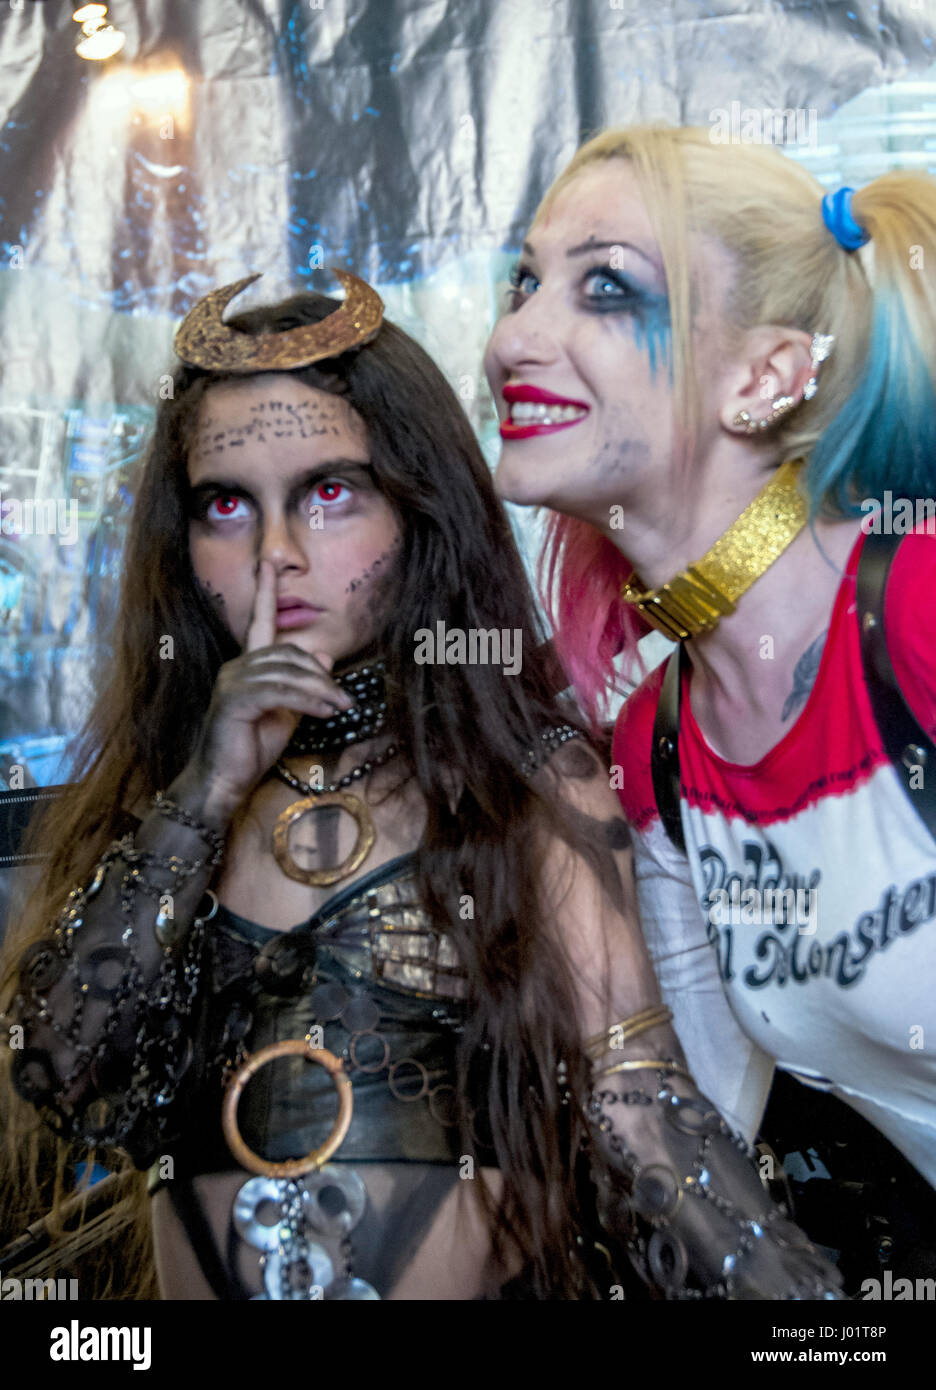 Two Girls Wearing Their Cosplay Costumes From The Movie Suicide